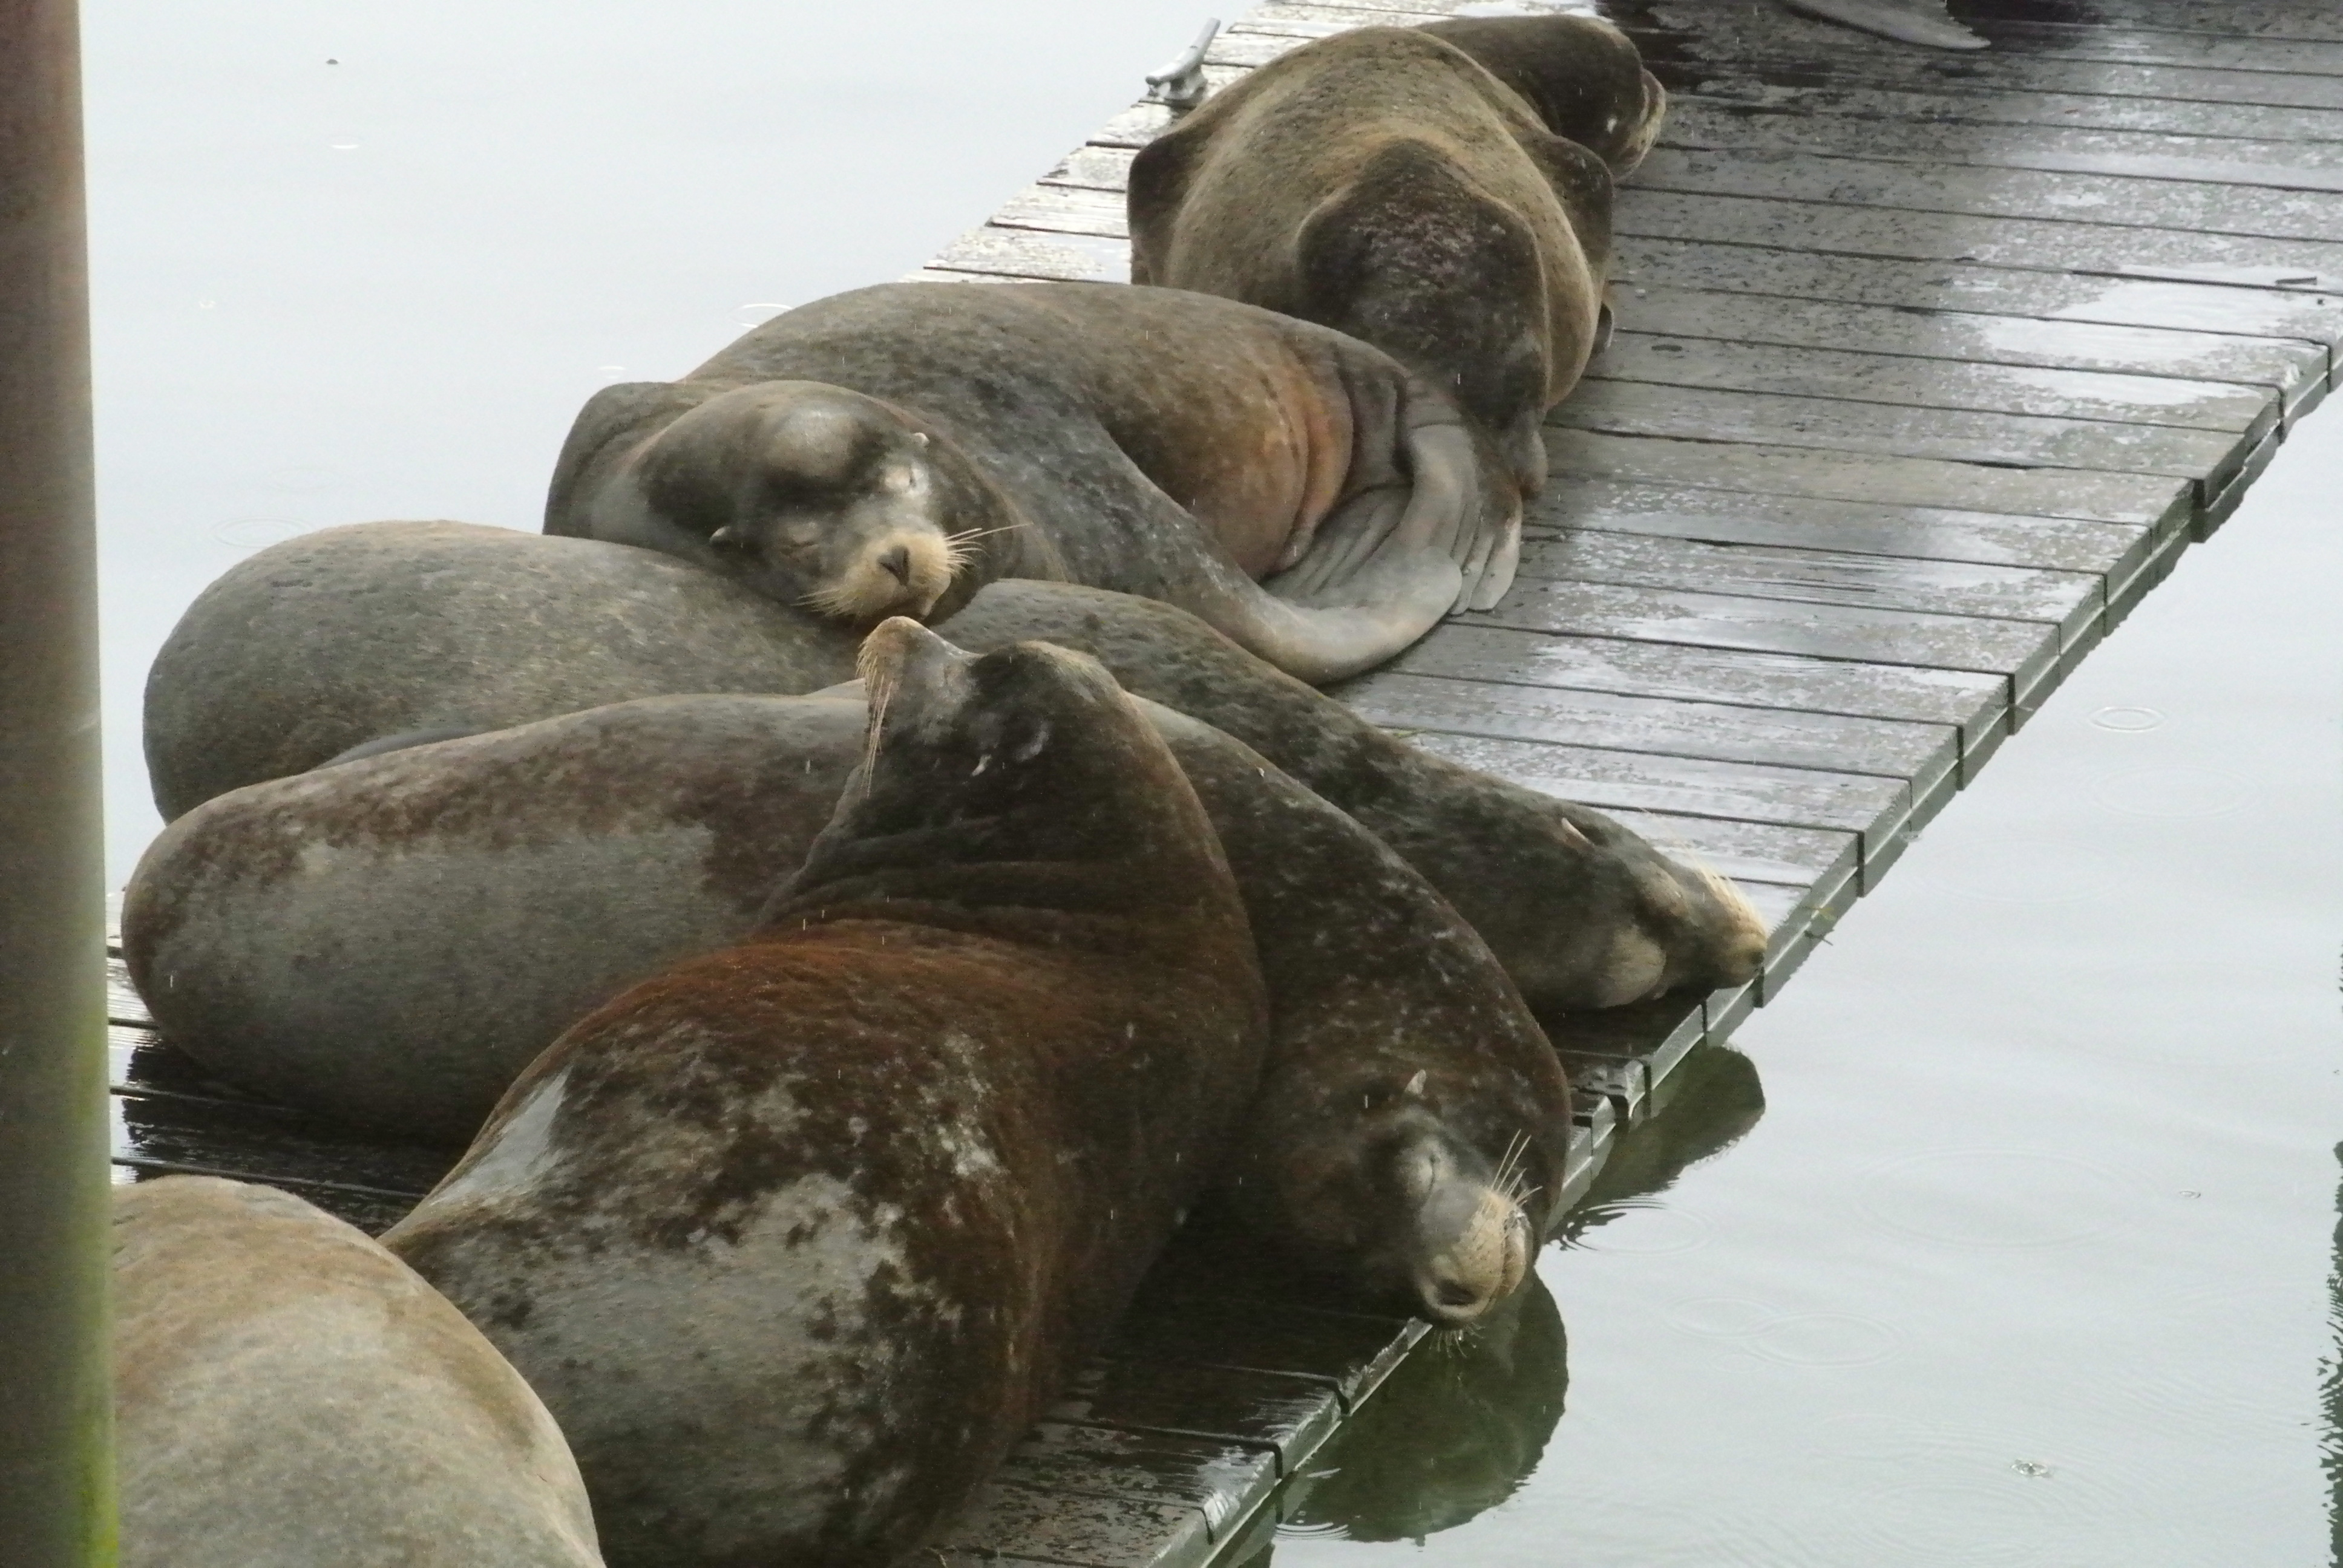 Road trip: Hanging with the Sea Lions in the Port of Astoria